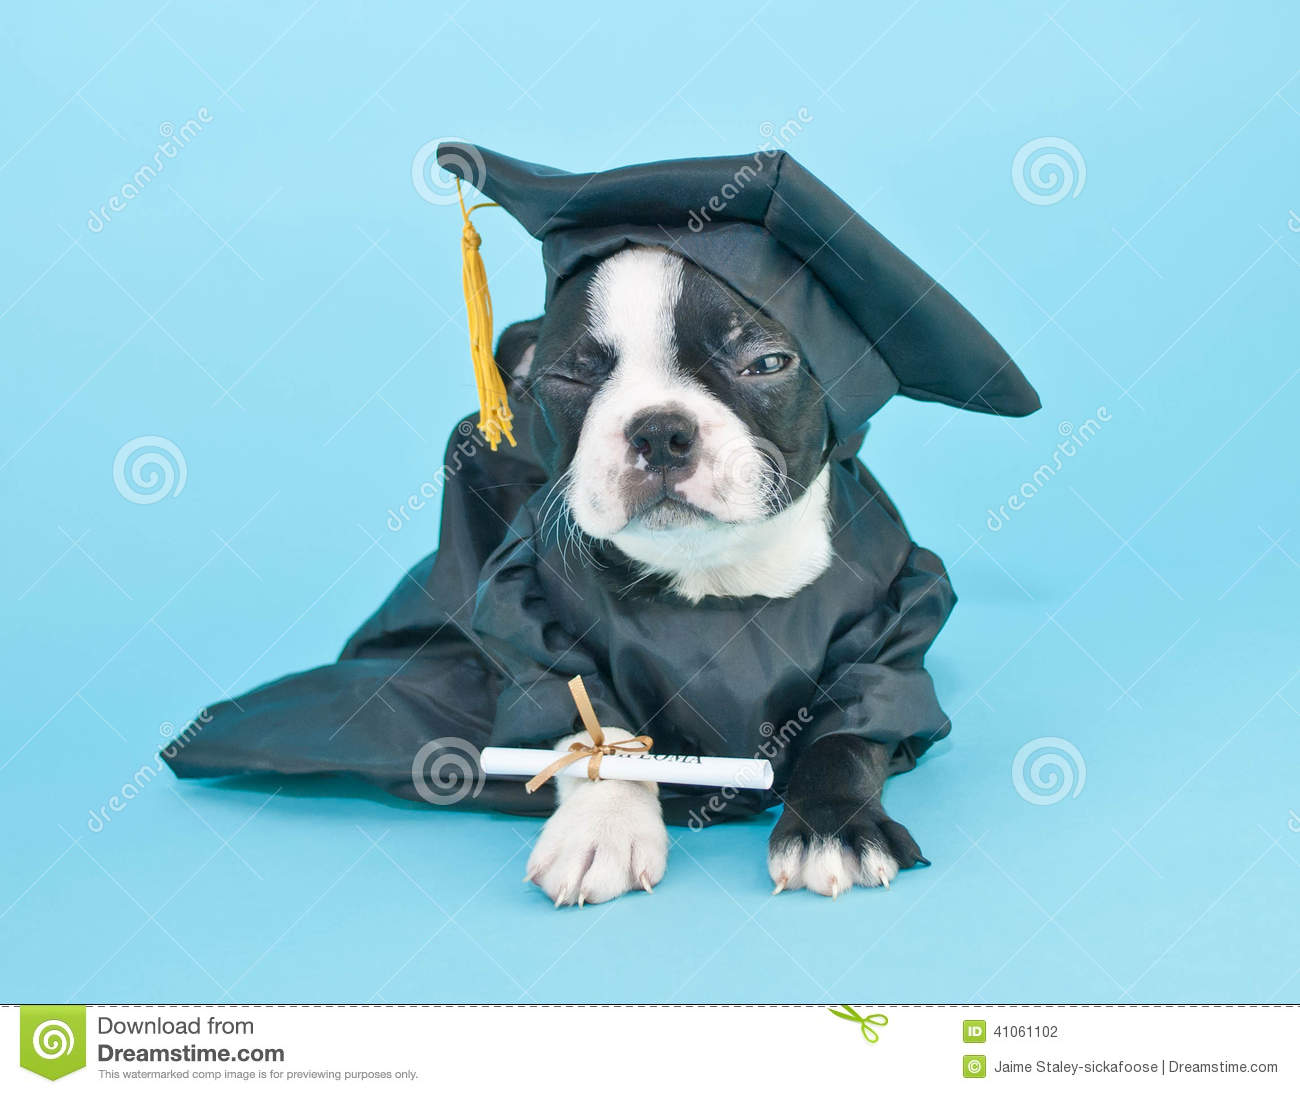 Mad Graduation Puppy stock photo. Image of puppy, expression - 41061102